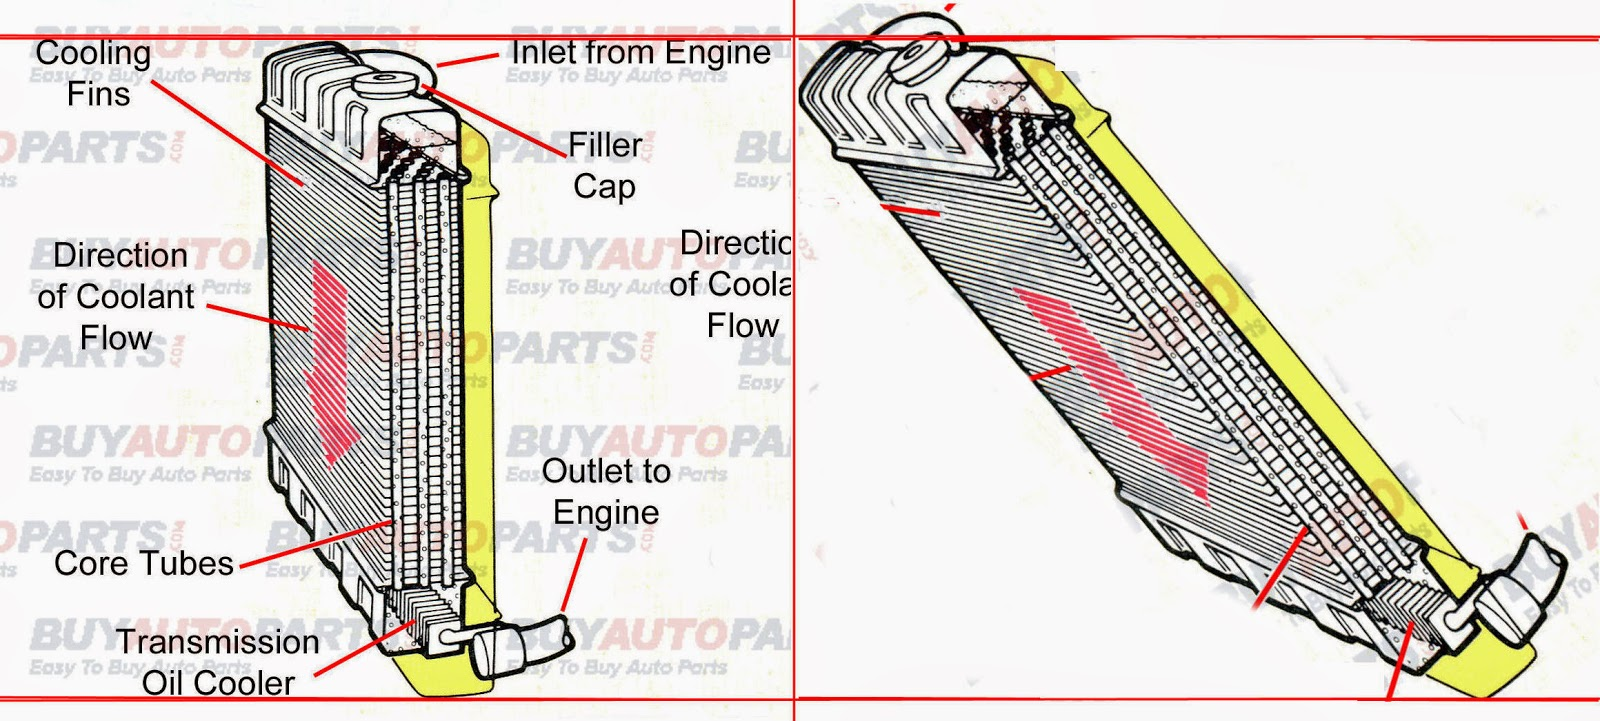 f1 car engine diagram j58 engine diagram wiring diagram